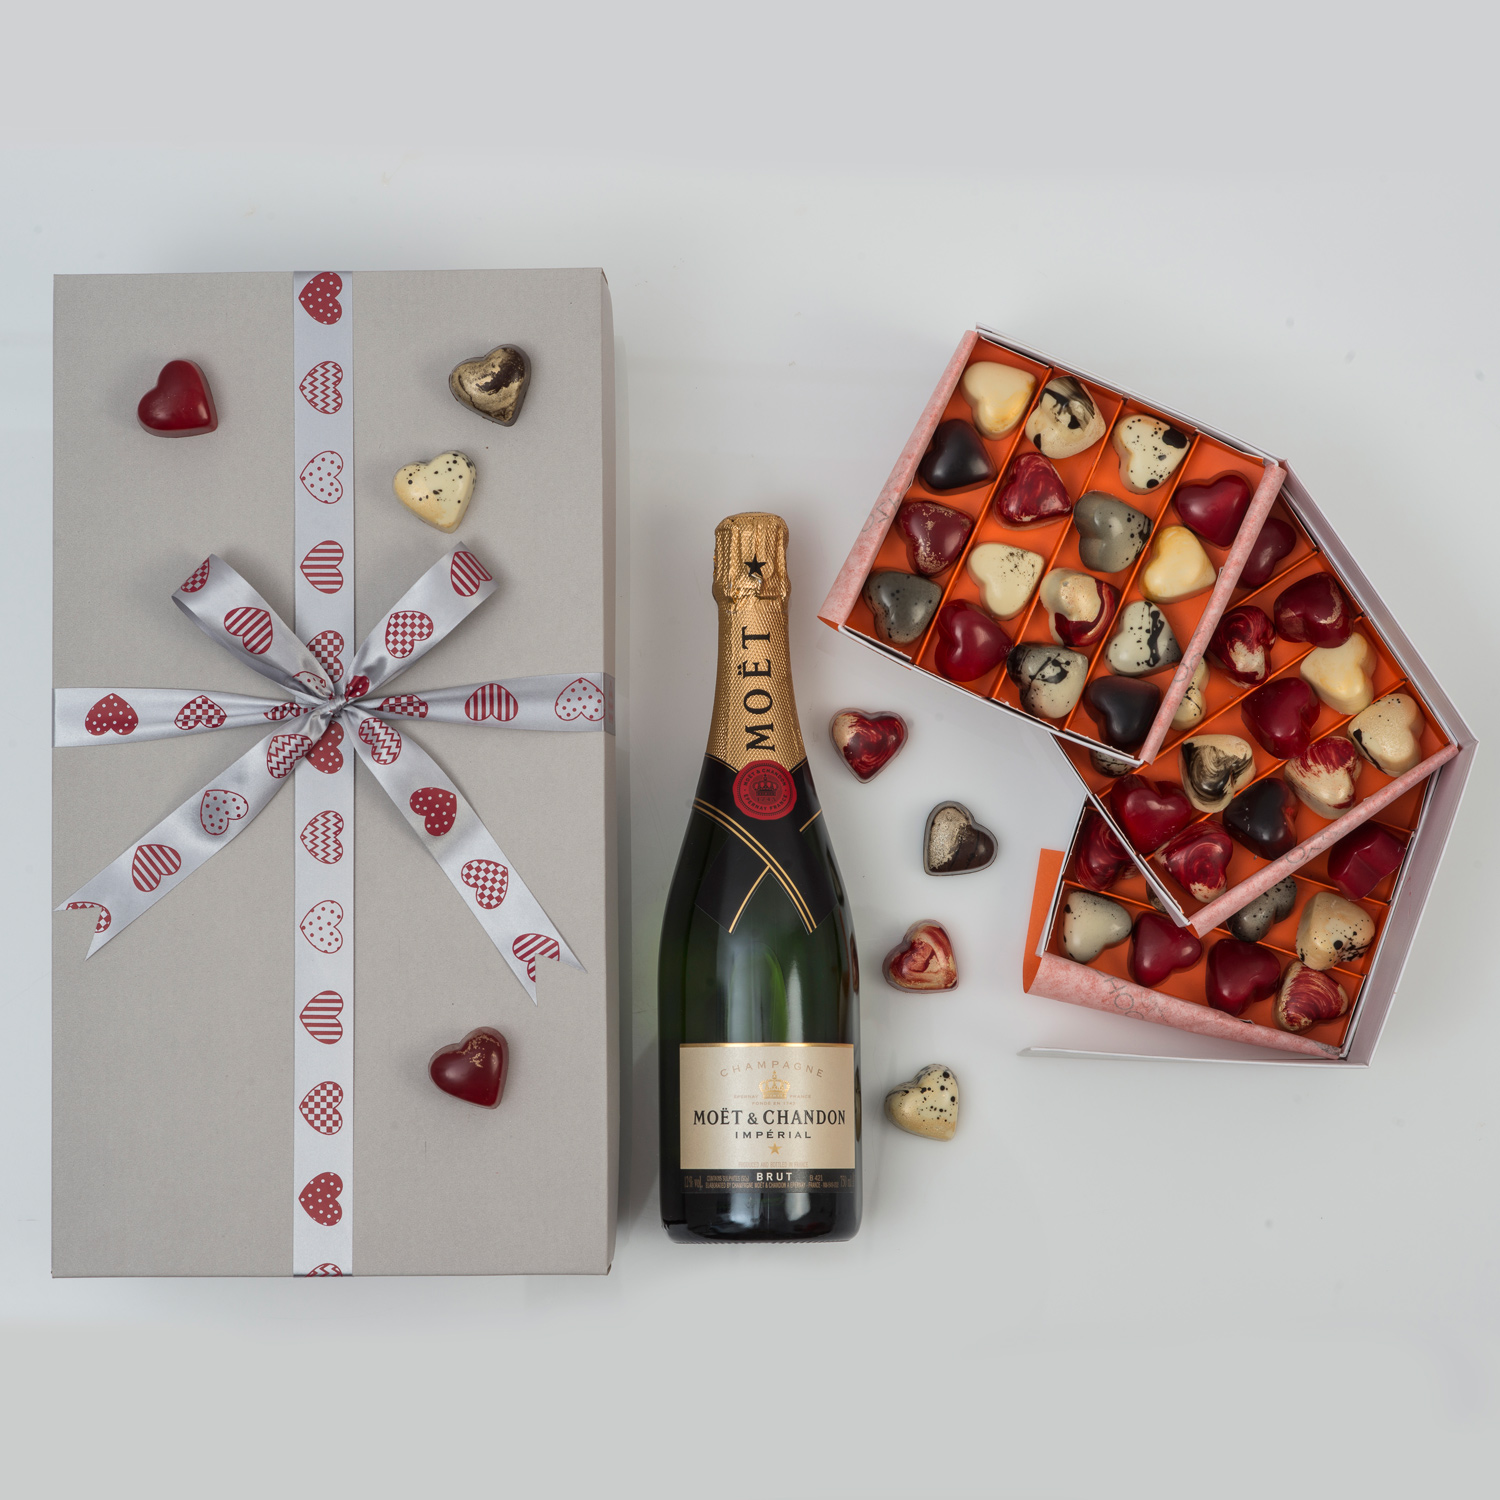 This Moët en Chandon & Chocolates Valentine's Gift Set includes exclusive chocolates and a bottle of